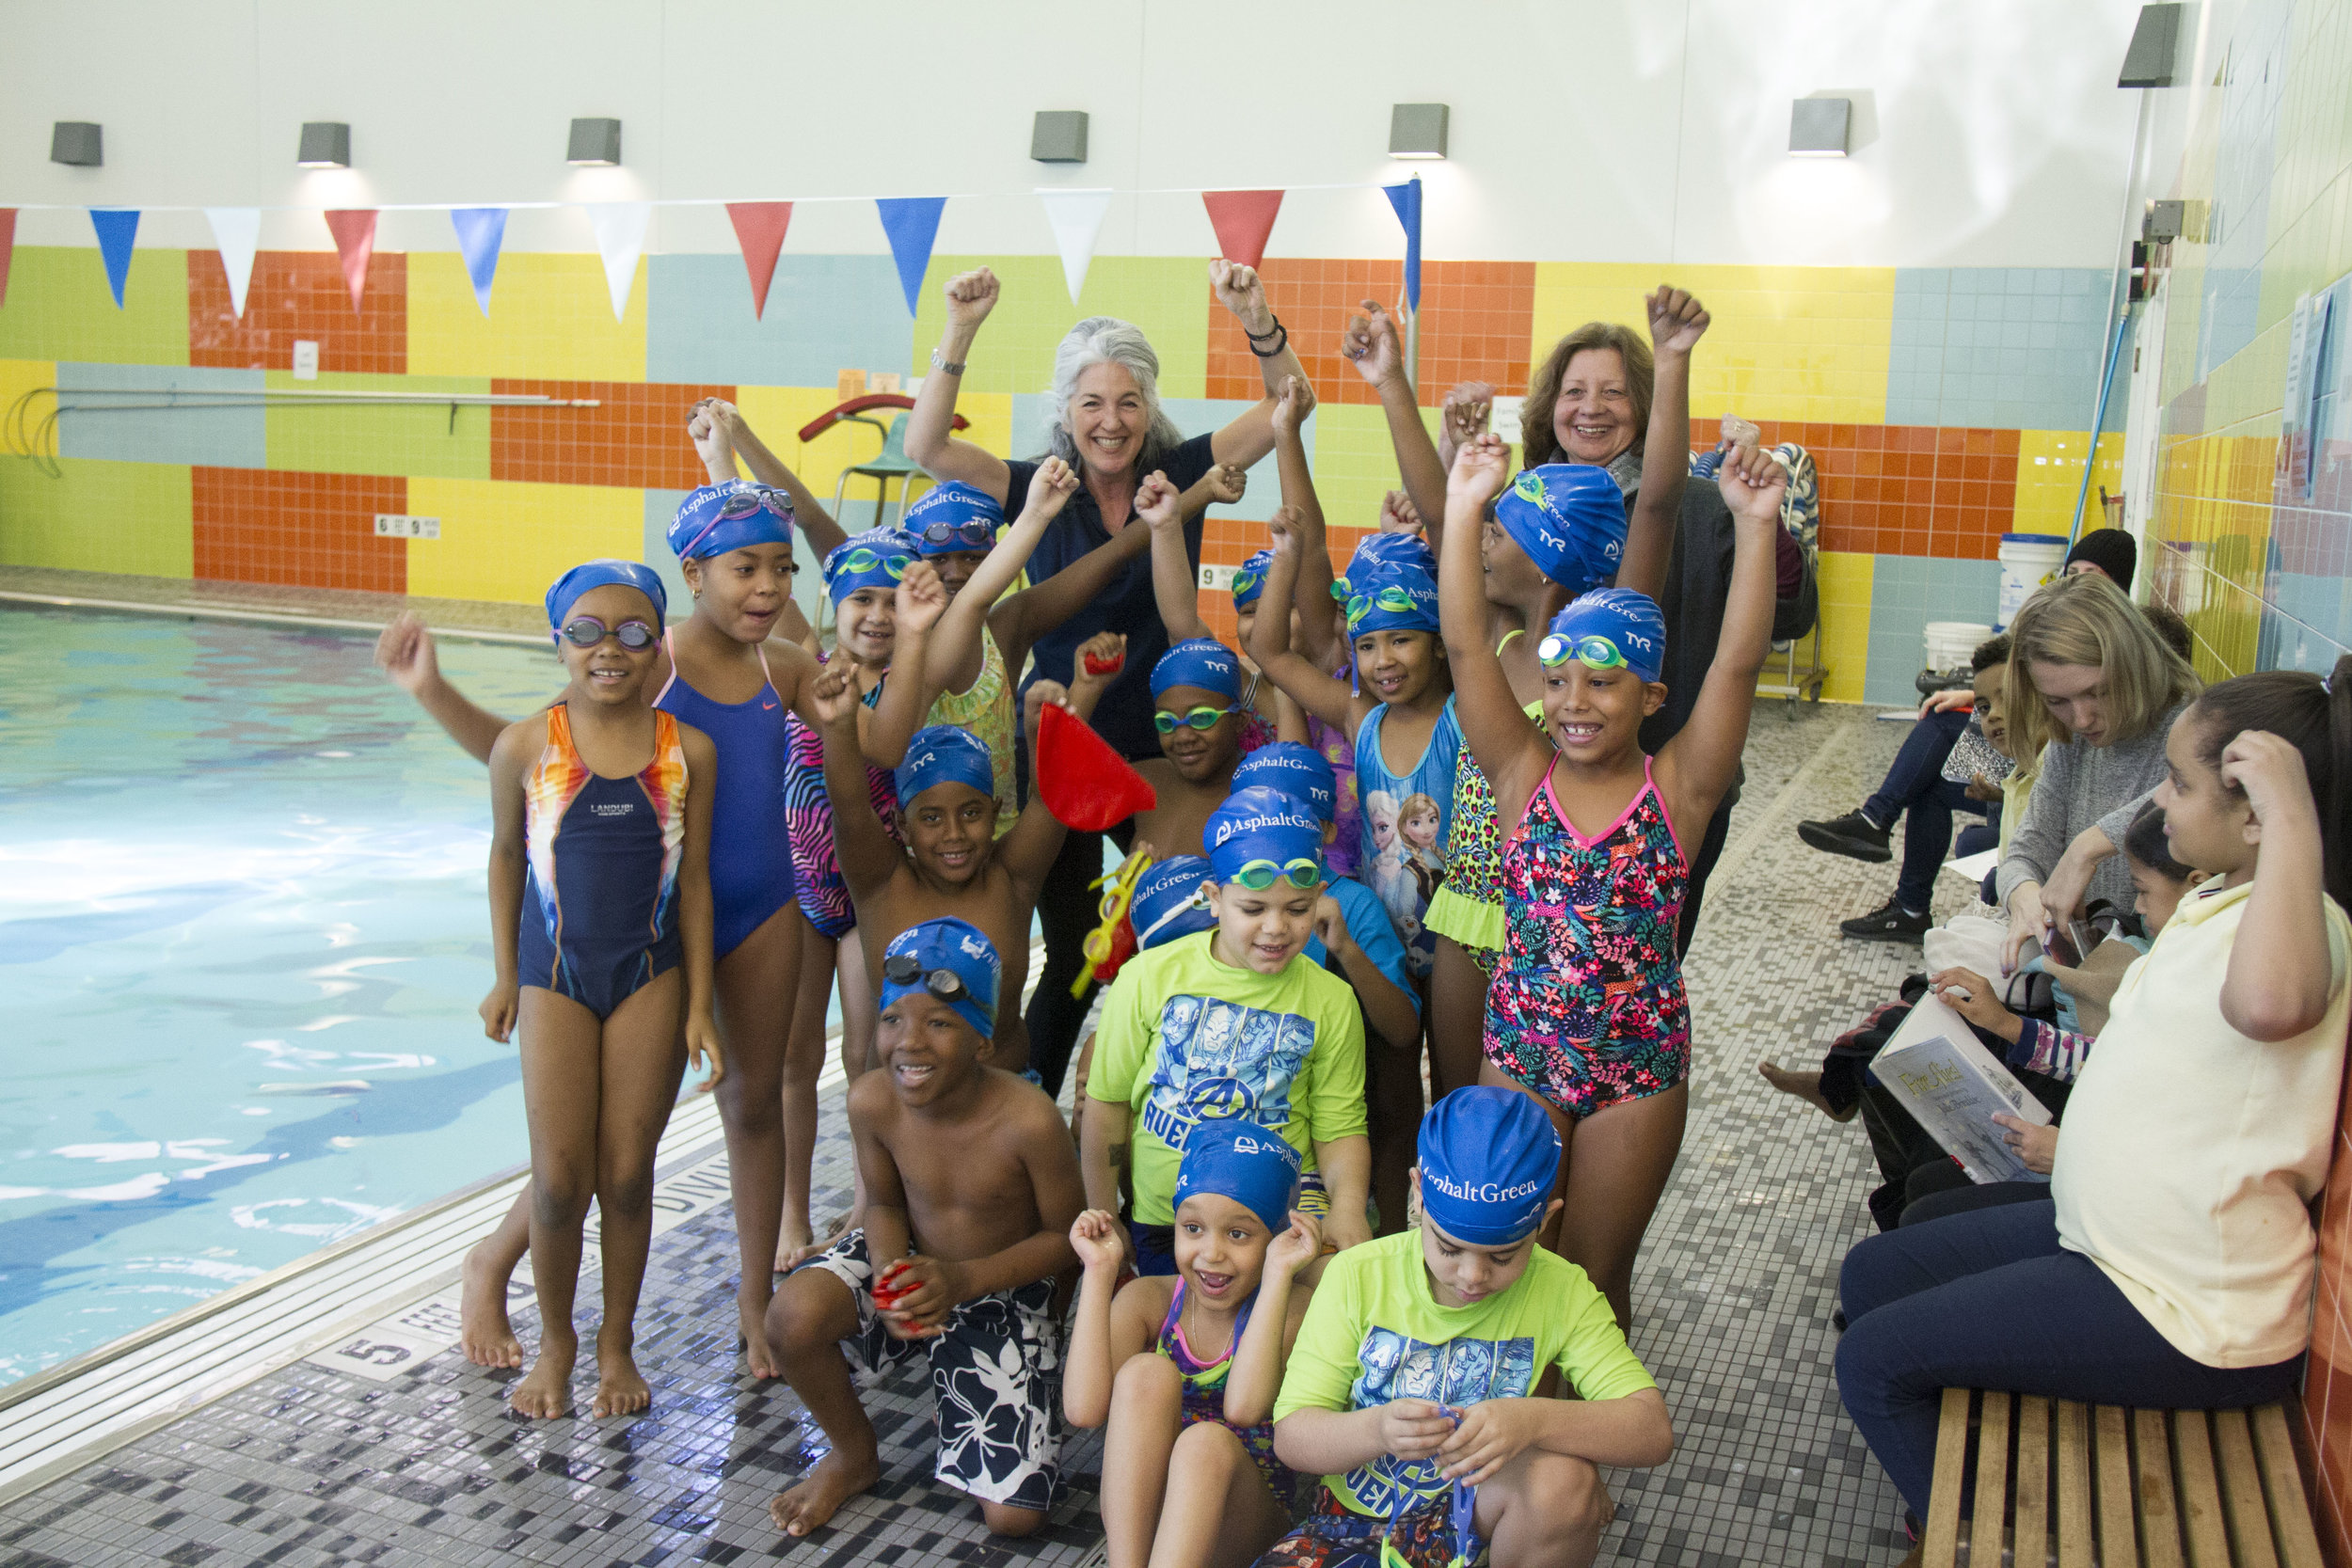 Swim Lessons - Learning to swim is one of the most important steps in reducing the risk of drowning. We provide over 10,000 free or low-cost swimming lessons to children each year by giving grants to our partners like the YMCA, Red Cross, Boys and Girls Club, etc.